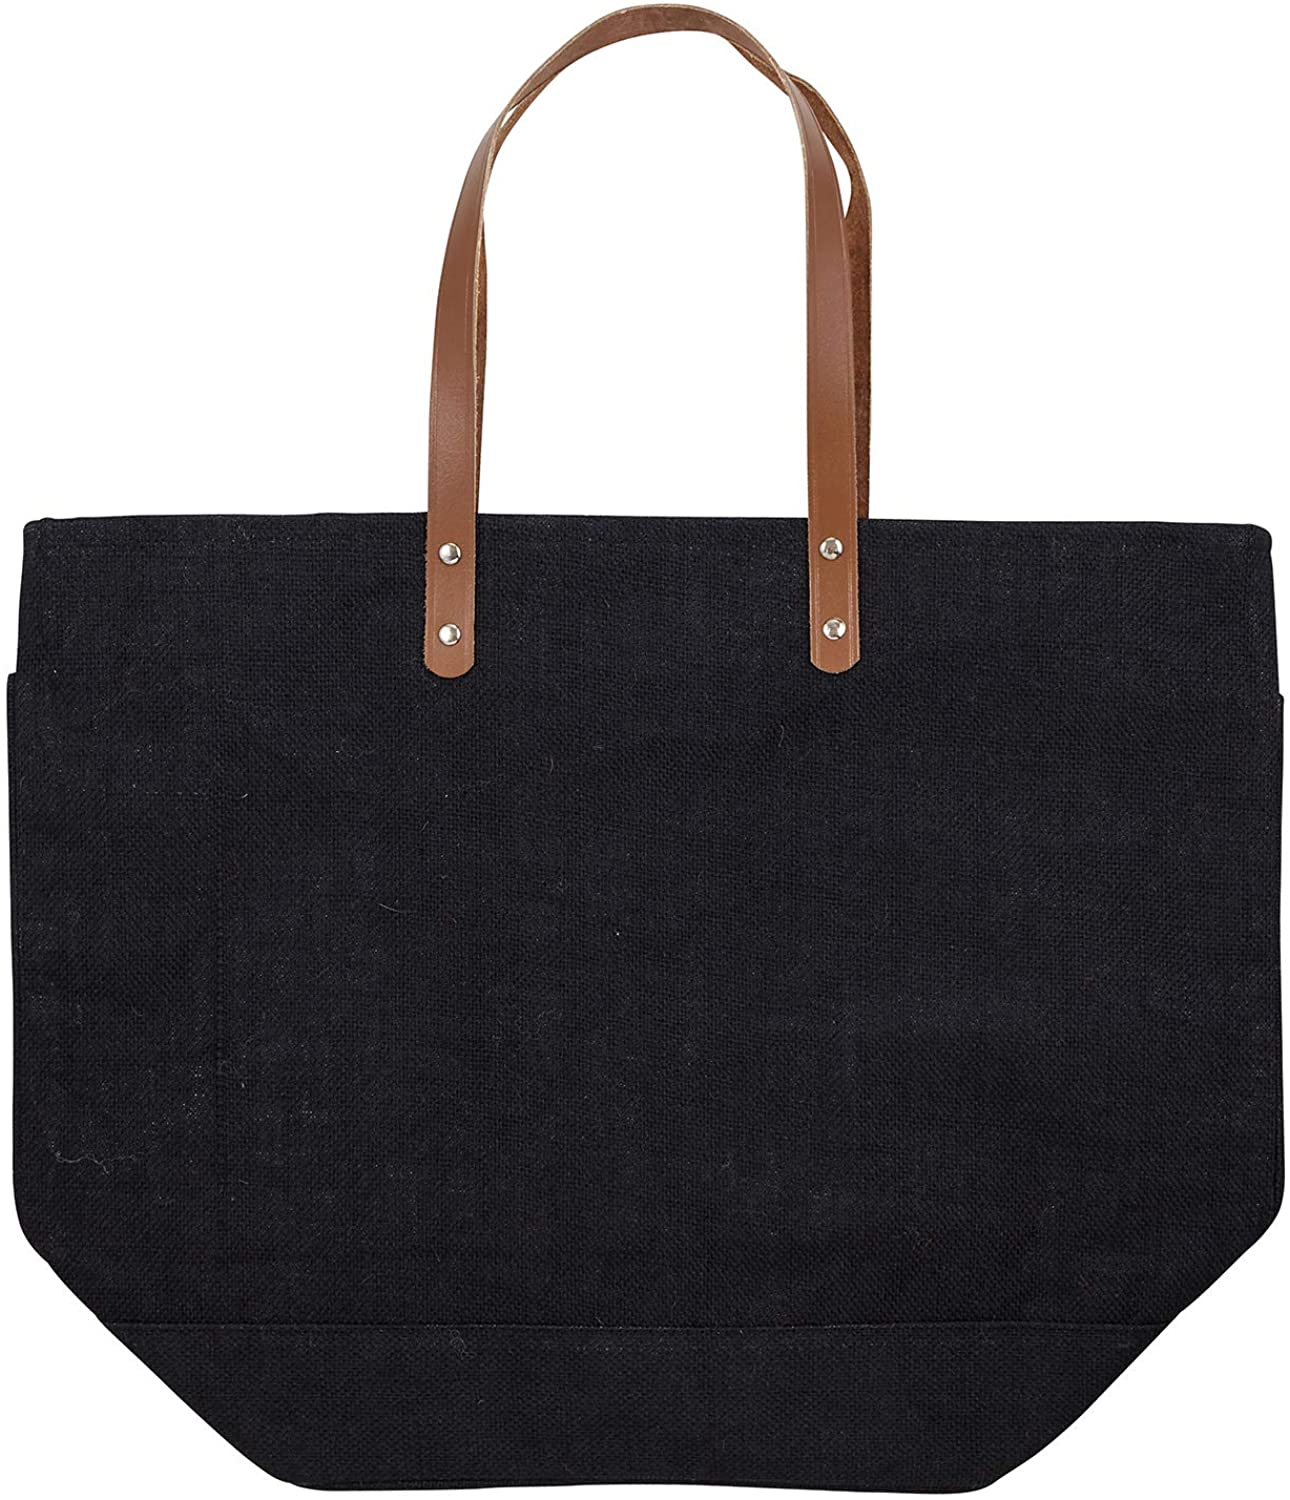 Charcoal Dark Grey 21 x 16 Jute Fabric Tote Bag with Strap